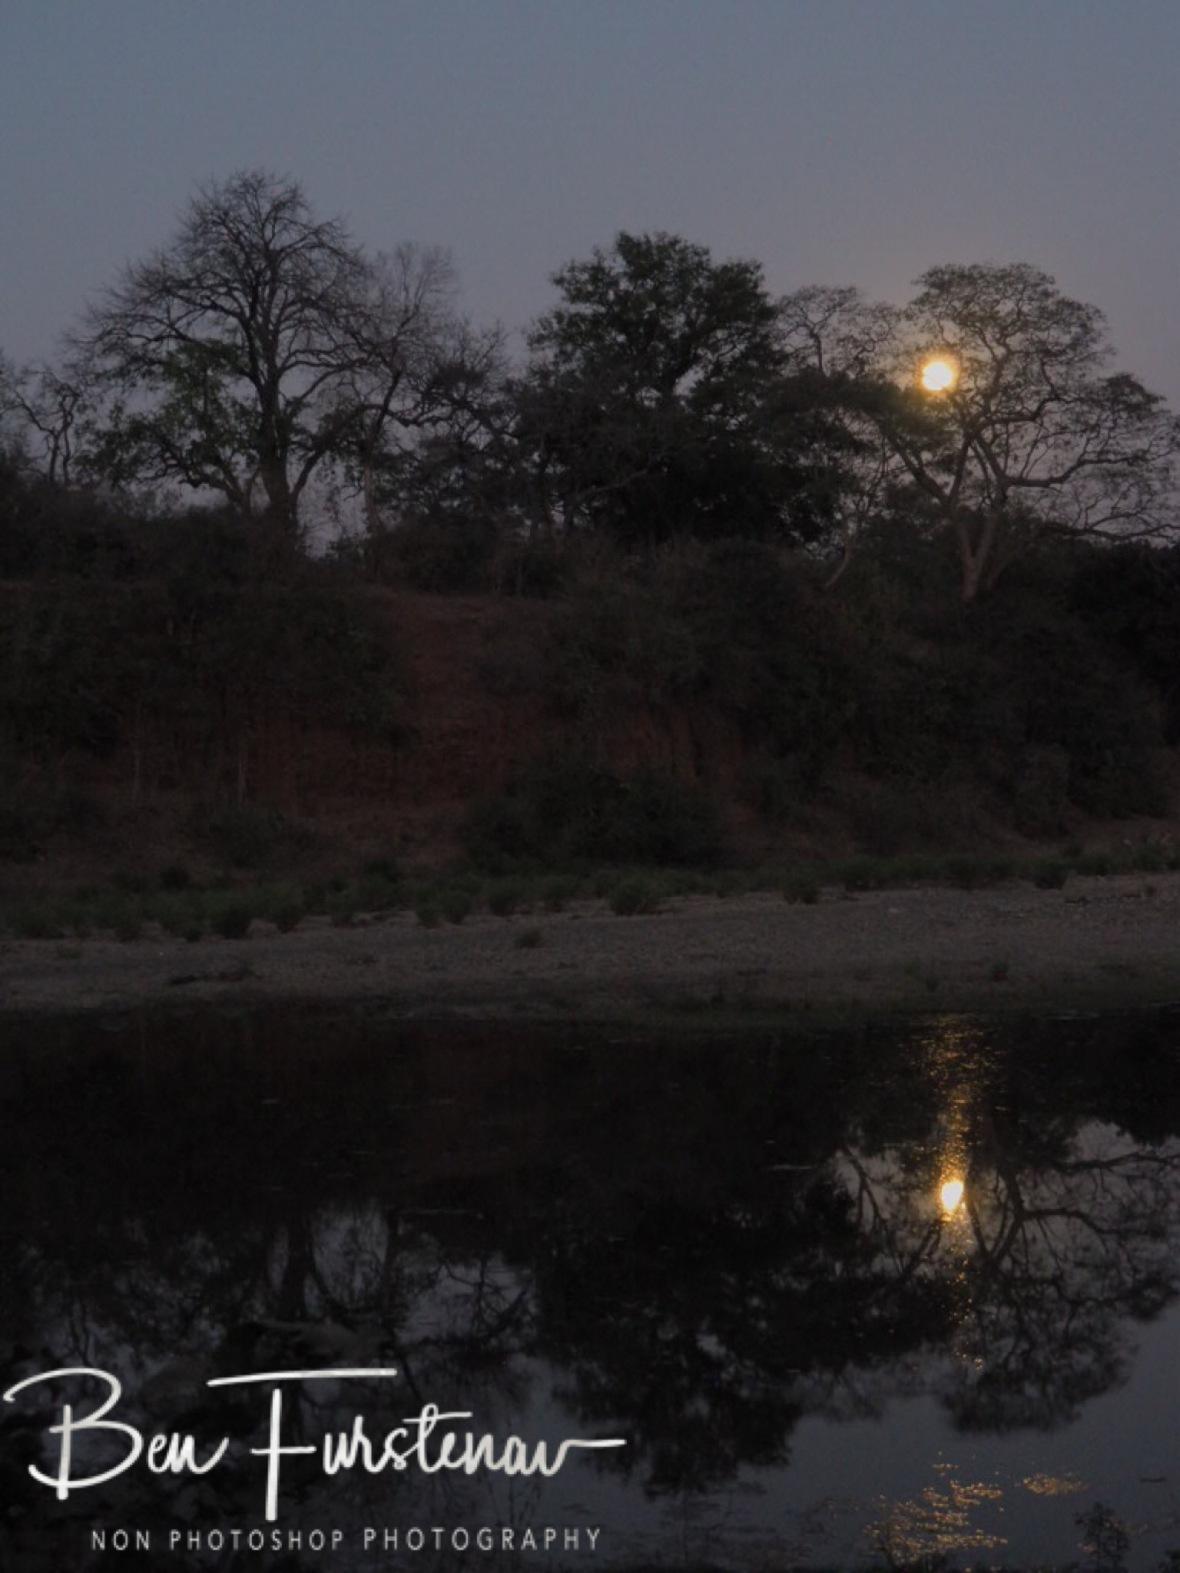 Full moon rise over Chongwe River, Lower Zambezi National Park, Zambia